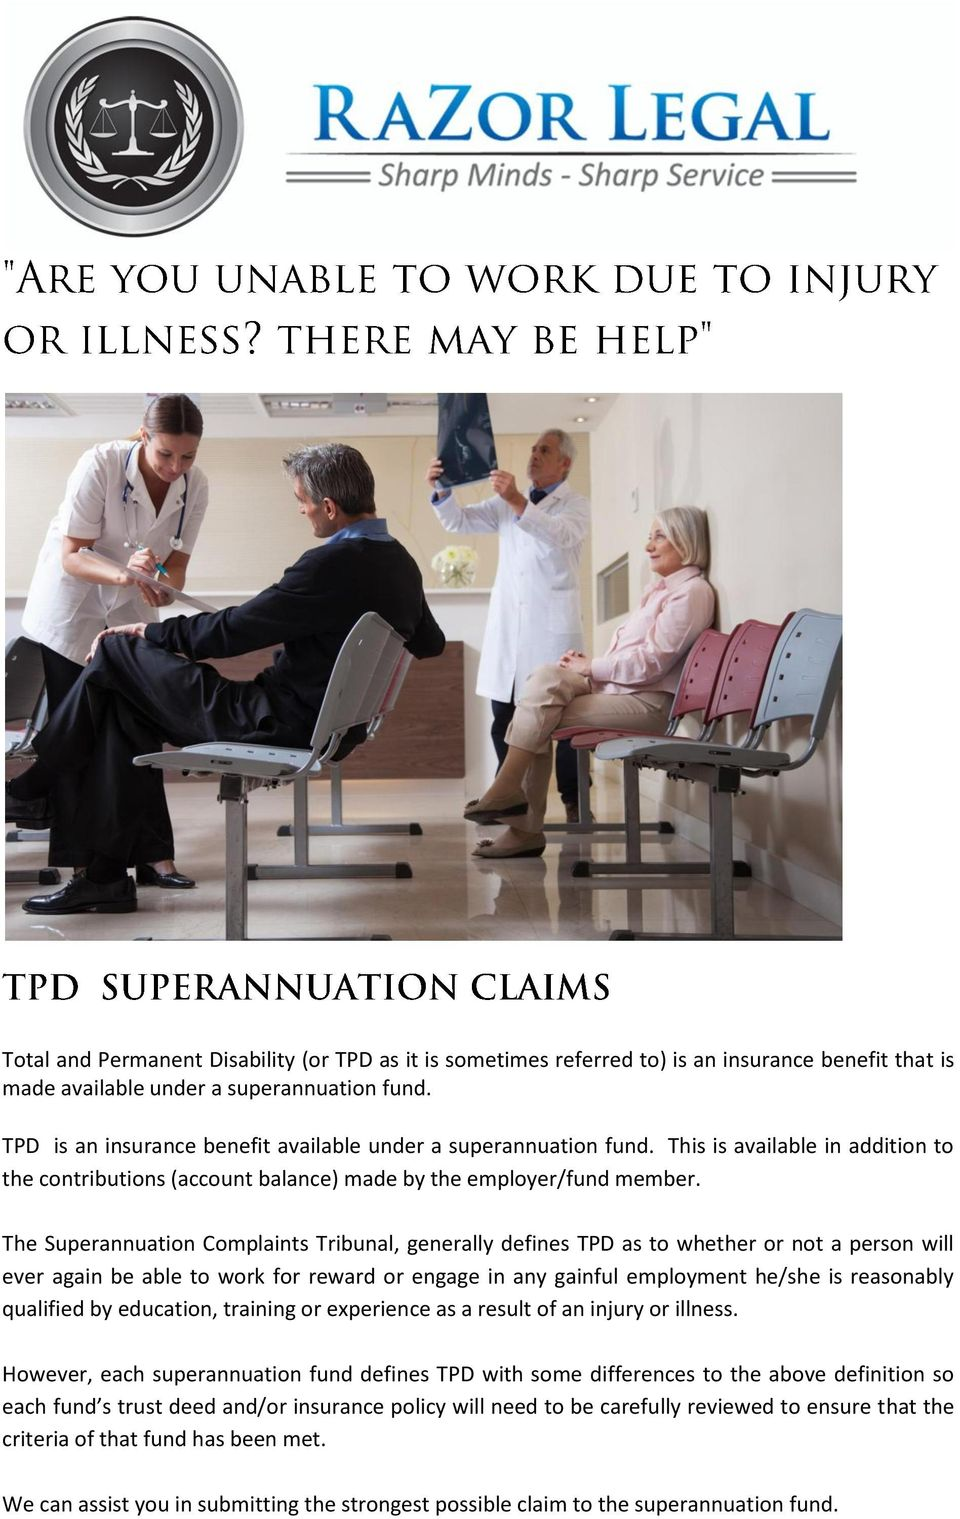 The Superannuation Complaints Tribunal, generally defines TPD as to whether or not a person will ever again be able to work for reward or engage in any gainful employment he/she is reasonably